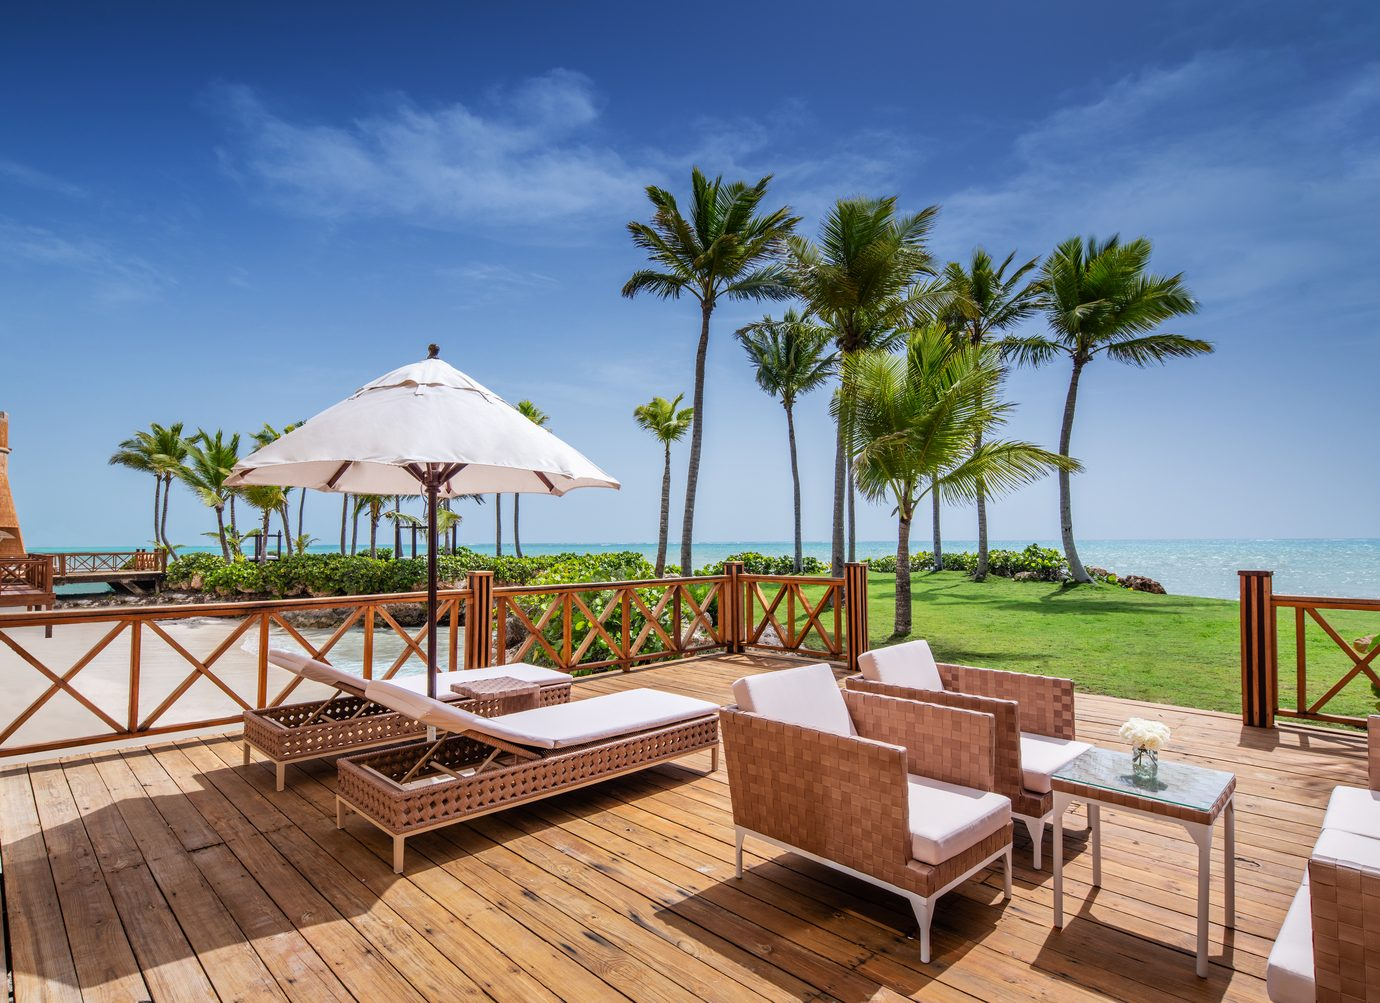 hard wood patio space with lounge chairs and regular seating chairs with cushions by the beach